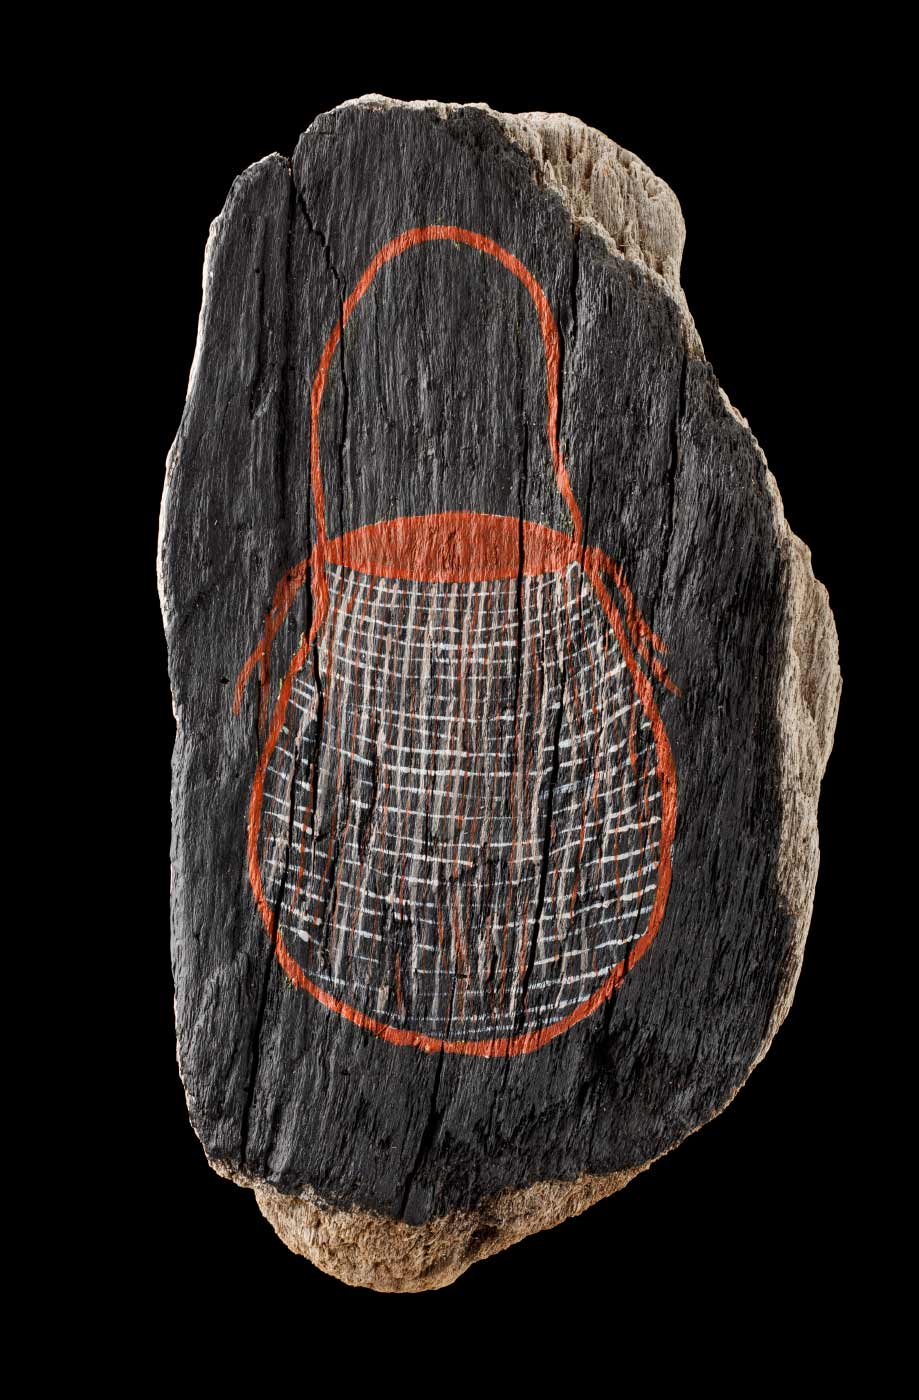 An acrylic painting on driftwood featuring a brown bag with white crosshatching against a black background. - click to view larger image